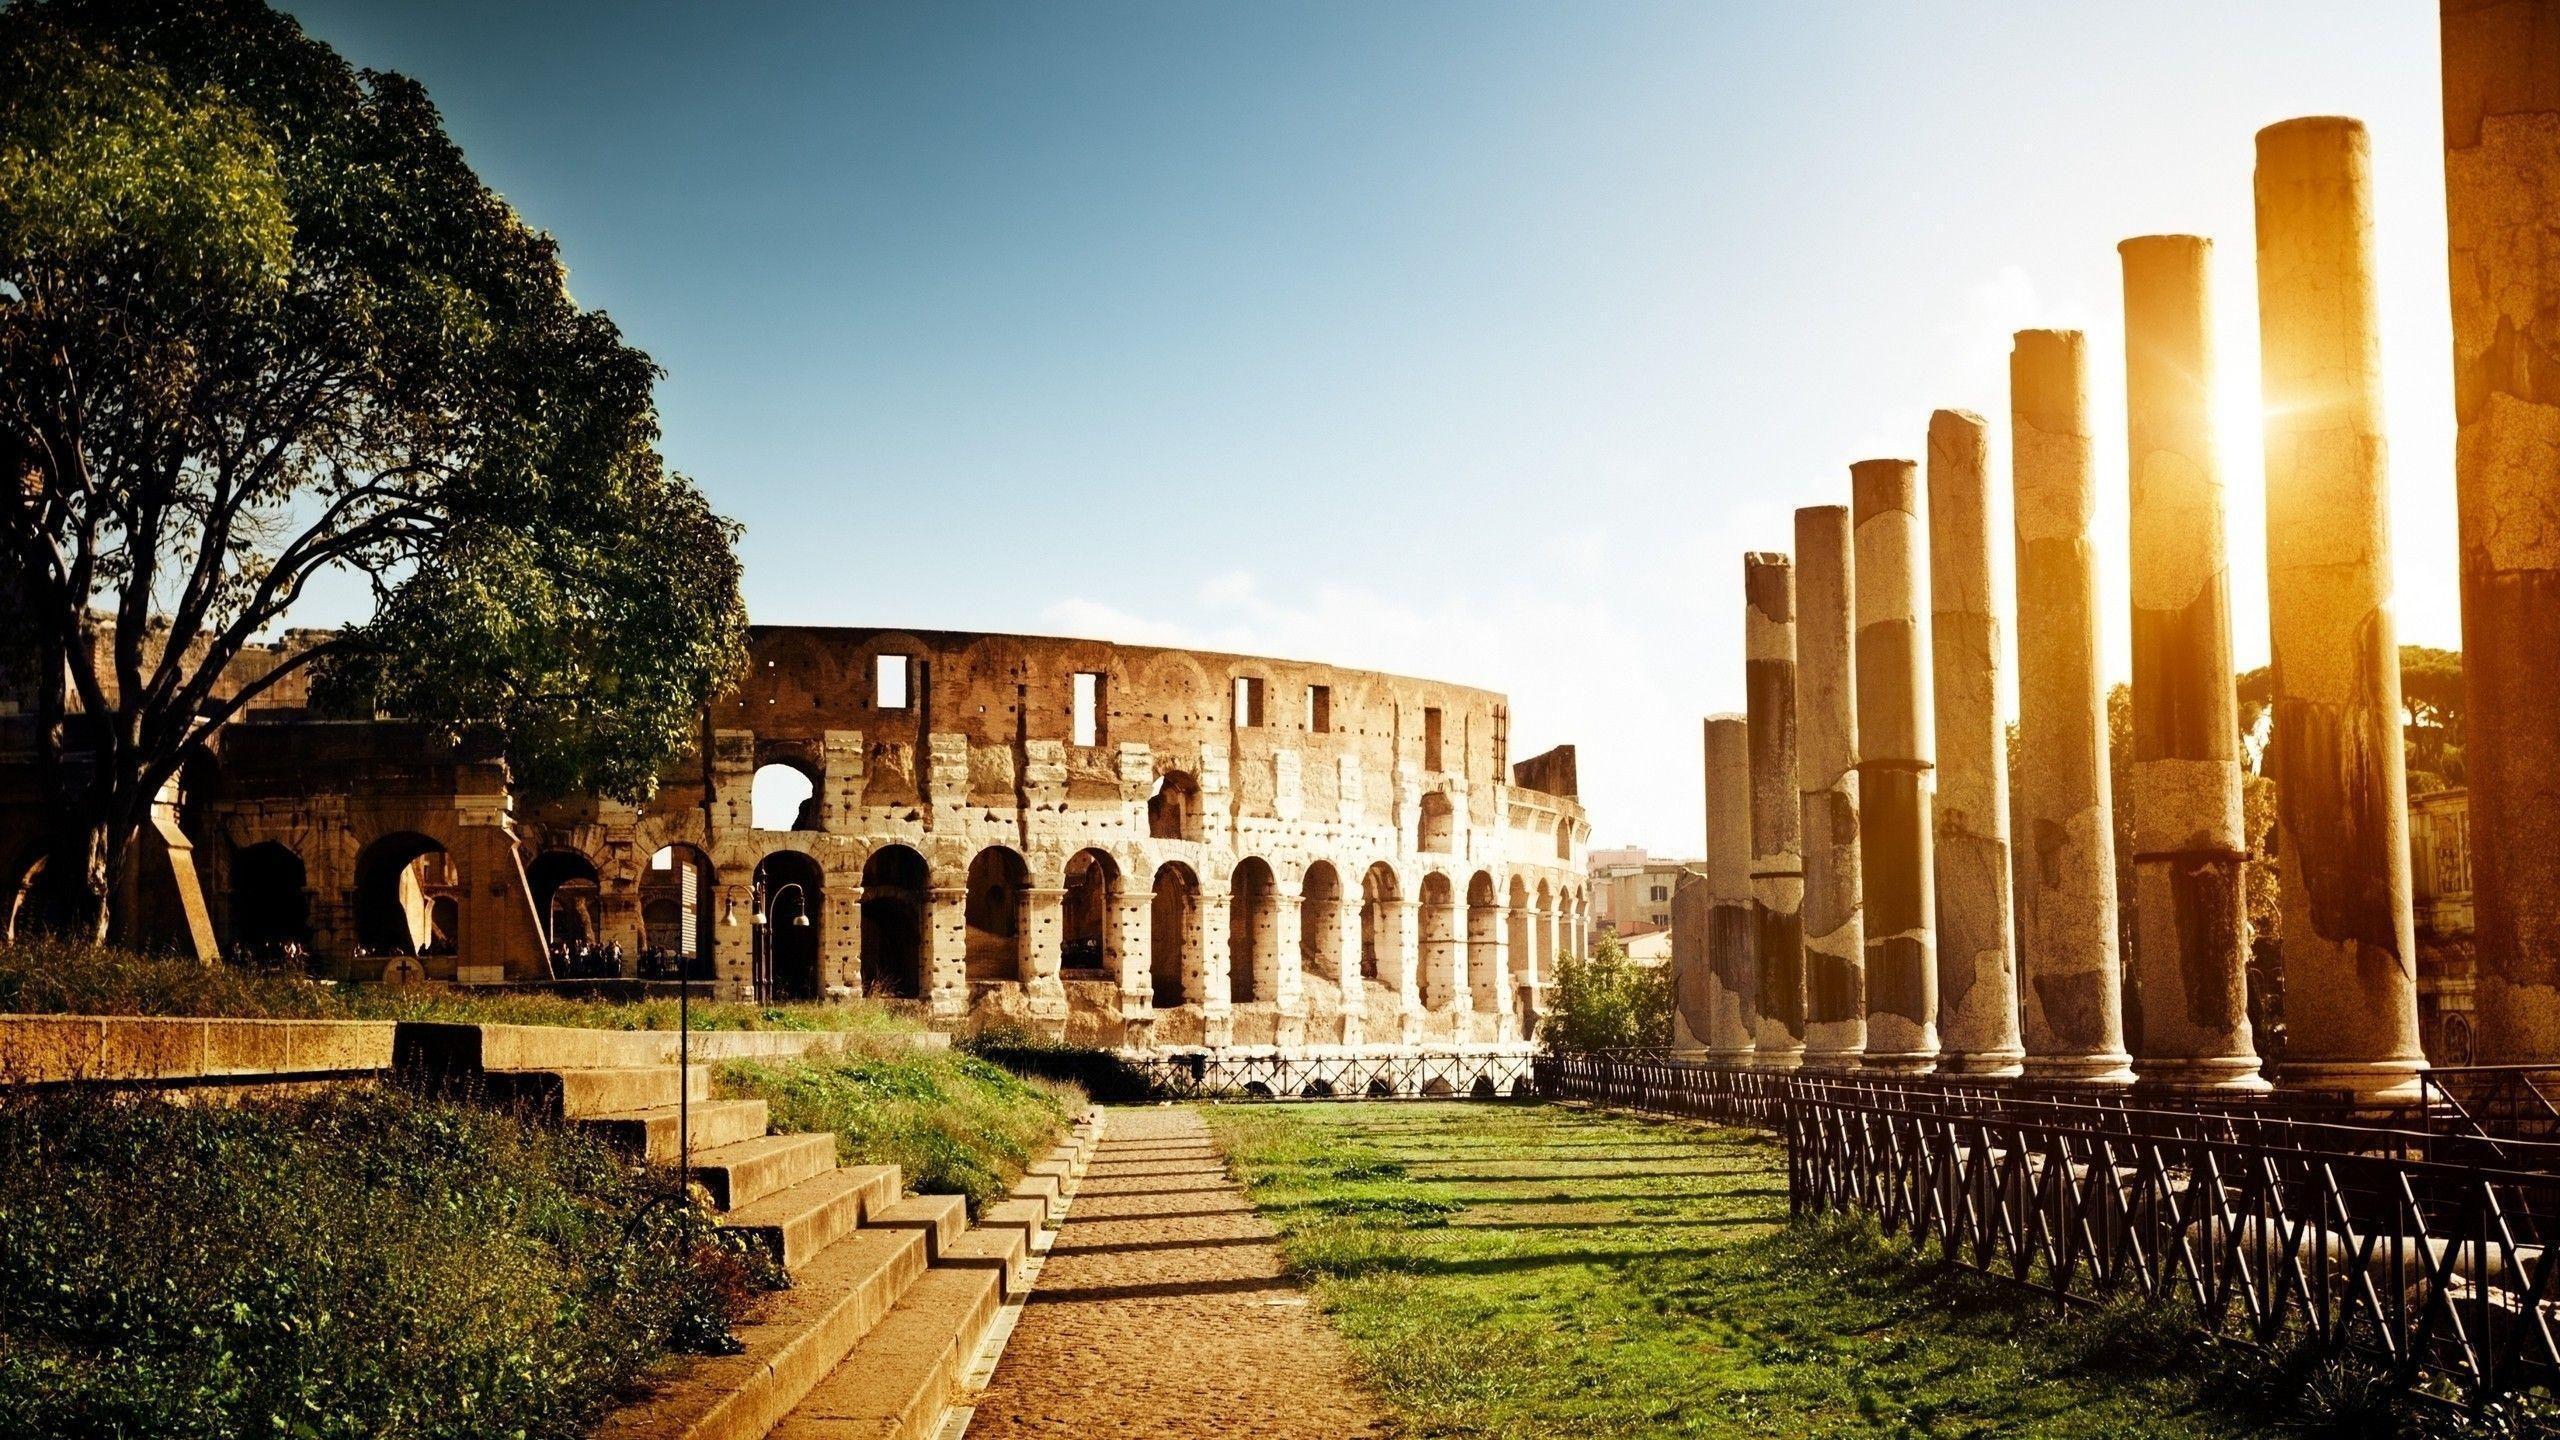 28 Rome HD Wallpapers   Backgrounds - Wallpaper Abyss